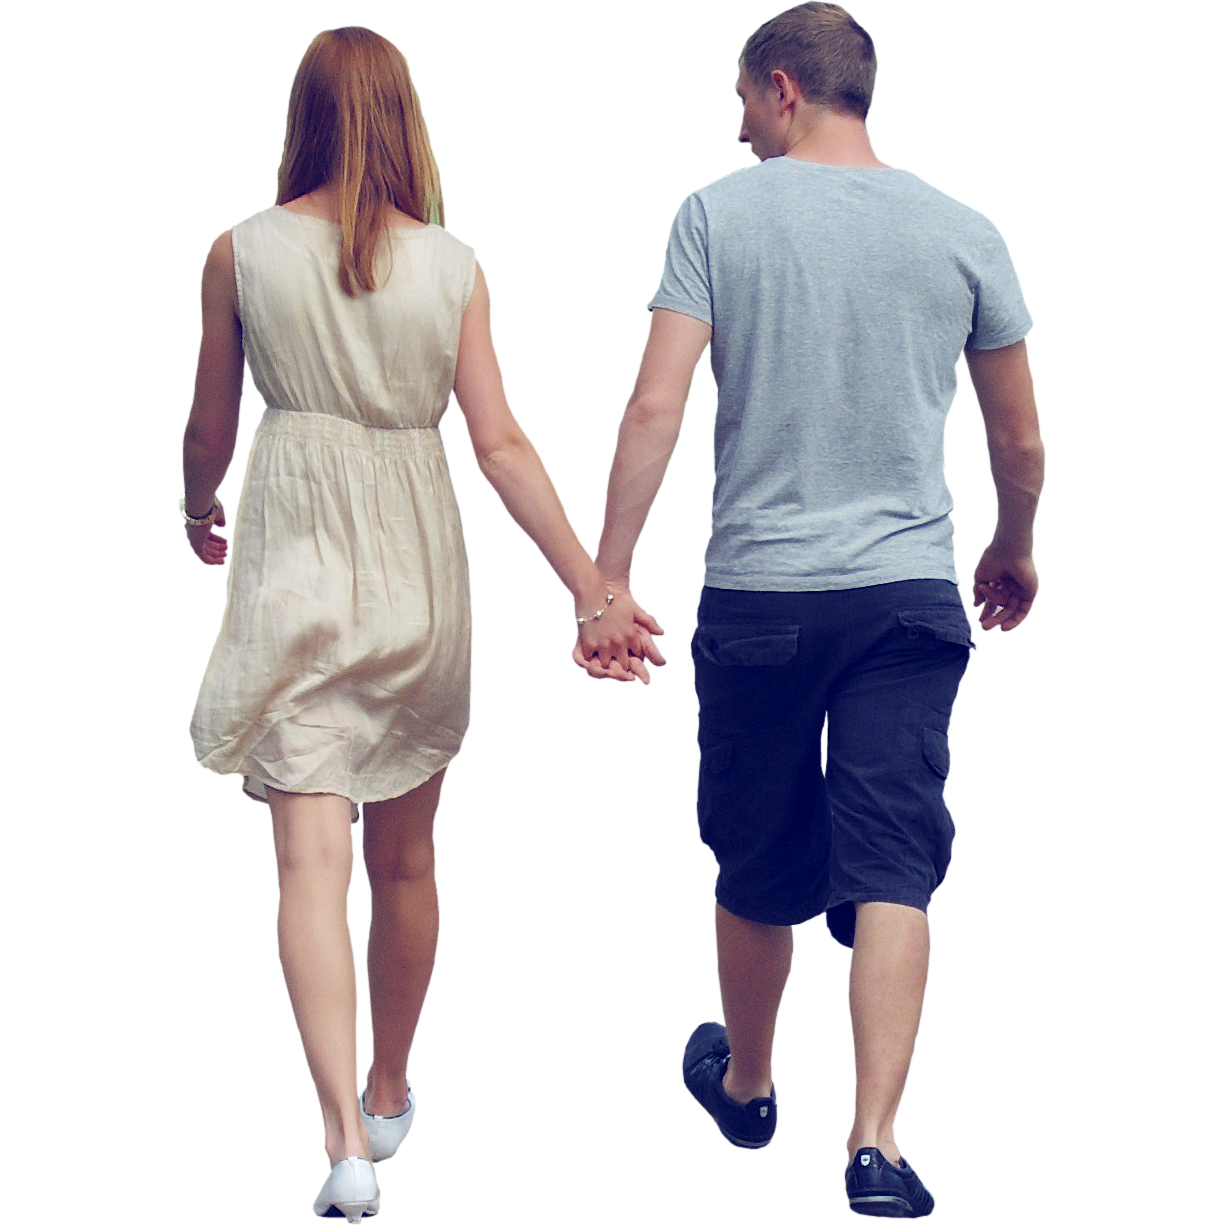 Couple holding hands png. Walking just pictures pinterest